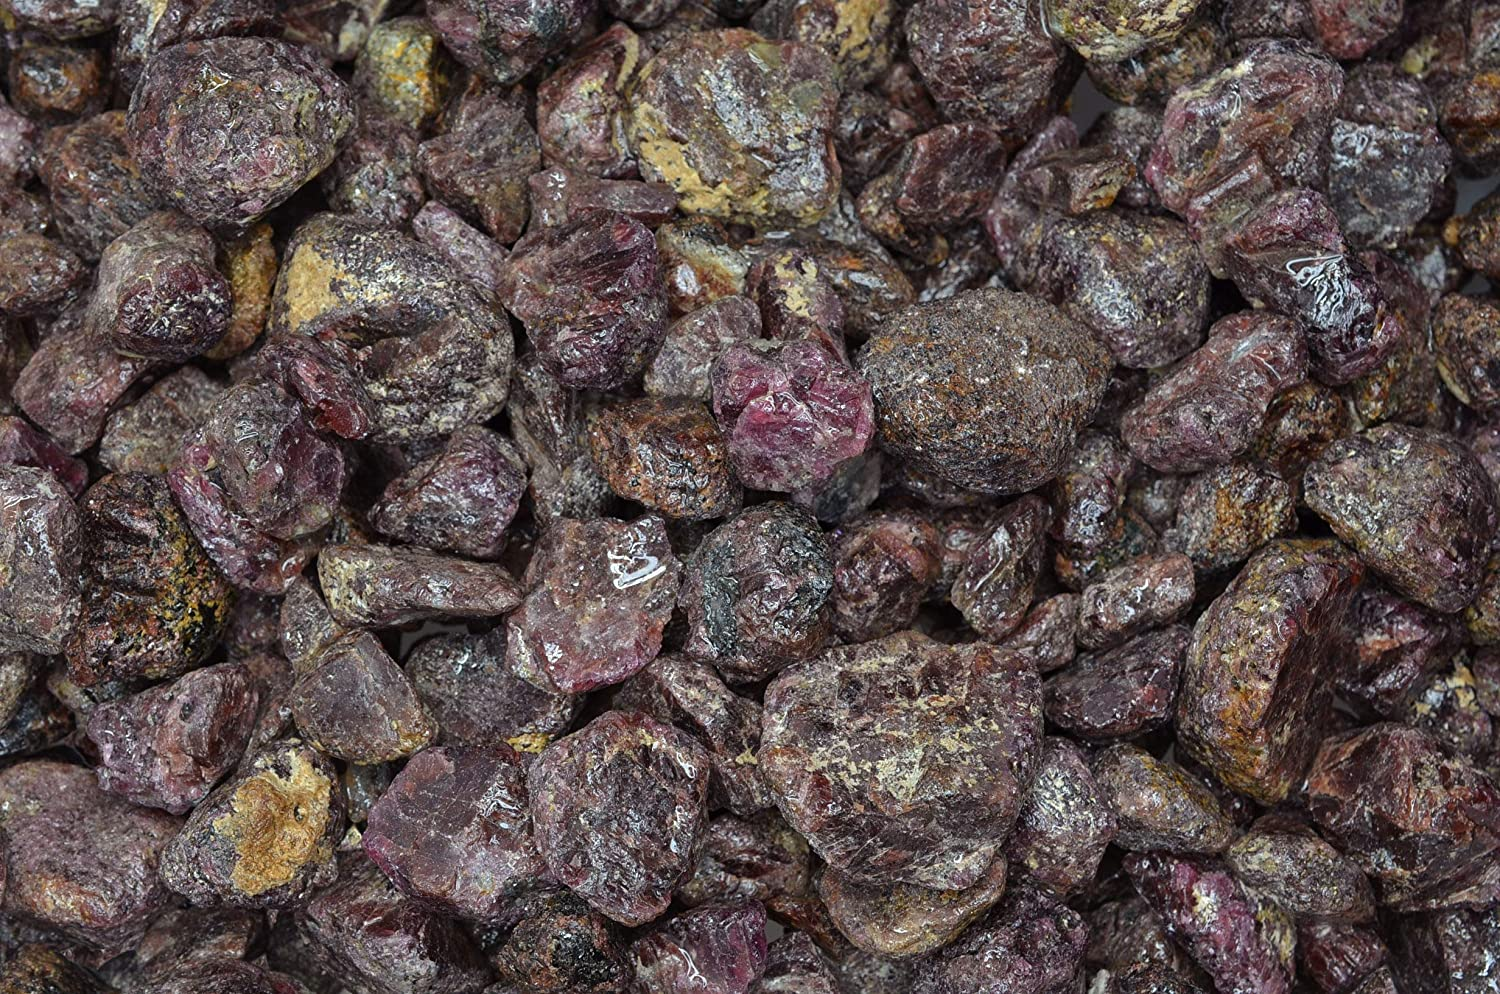 Fantasia Materials Broken Amethyst Points and Pieces 2 lbs Amethyst Rough Stones from Brazil